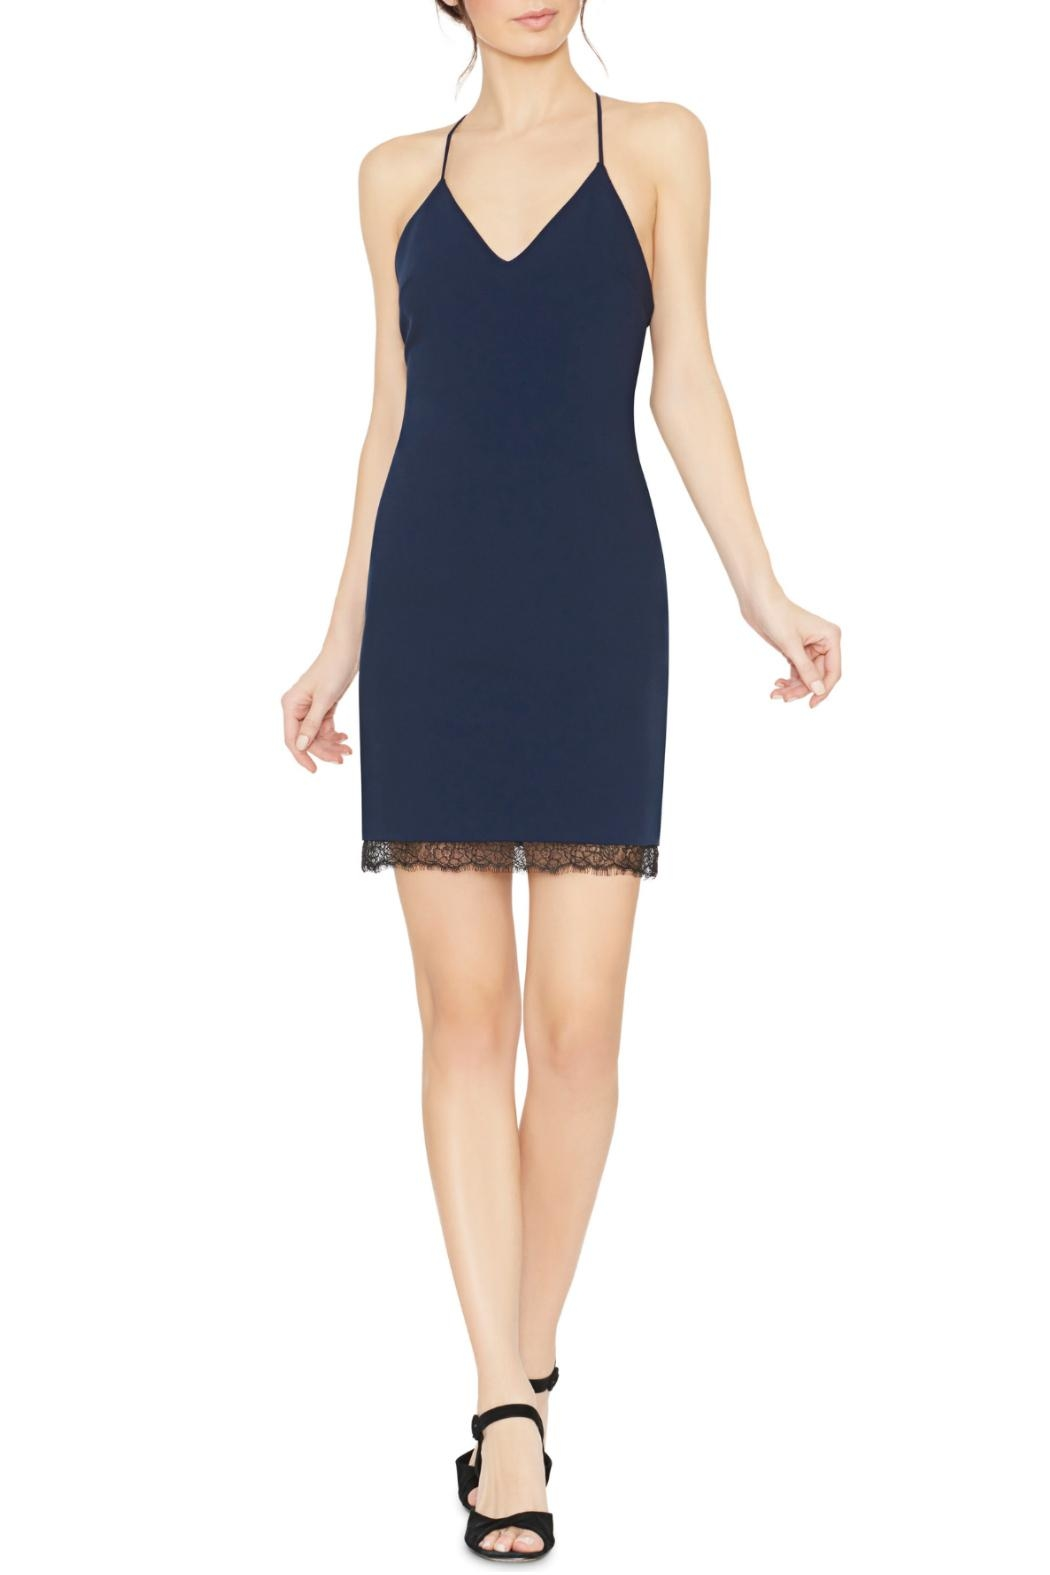 Alice + Olivia Navy Sleeveless Sheath Dress - Front Cropped Image